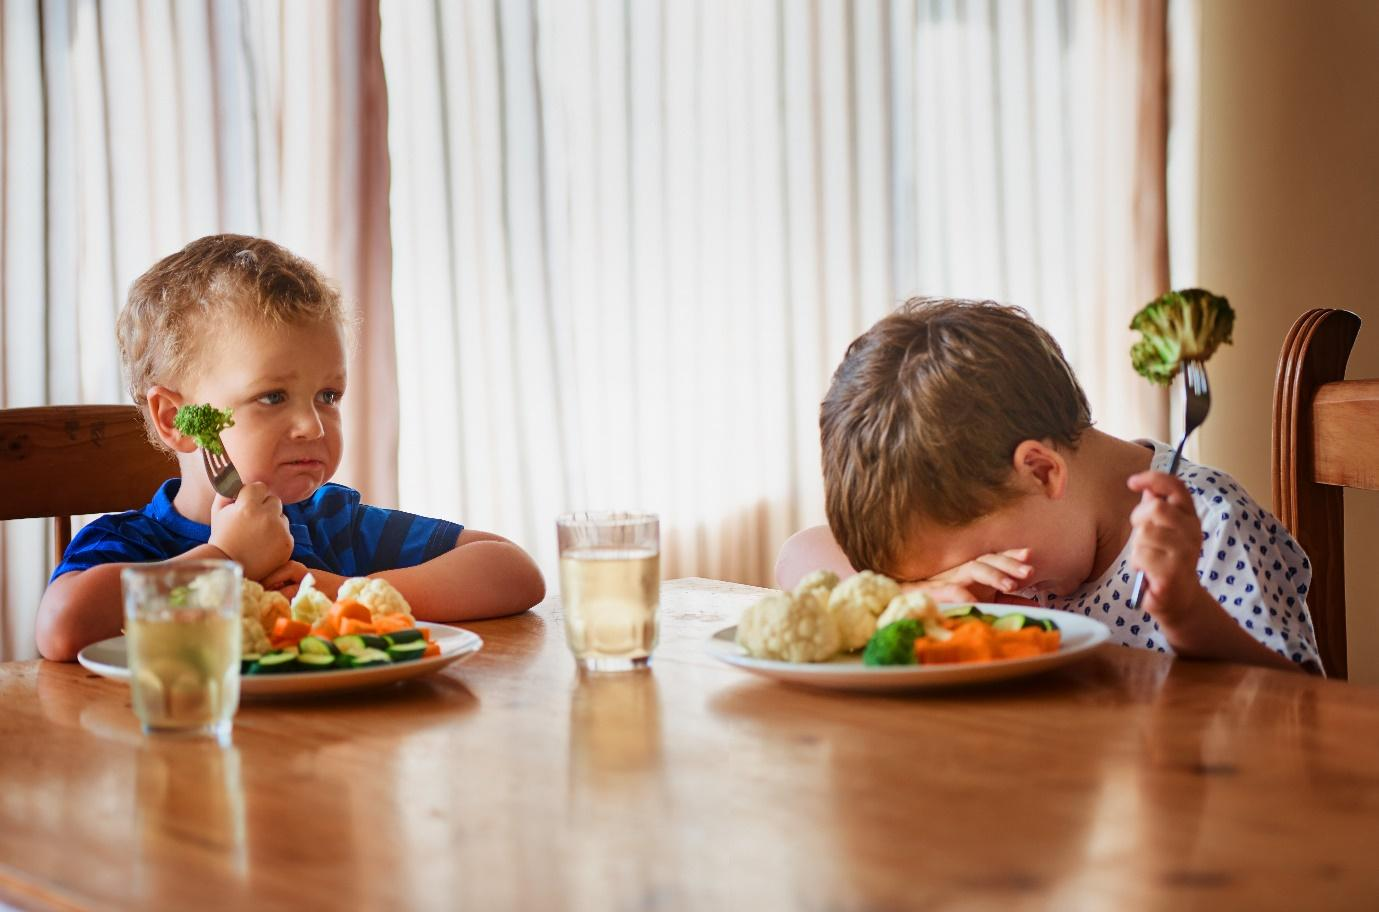 A couple of kids eating at a table  Description automatically generated with low confidence